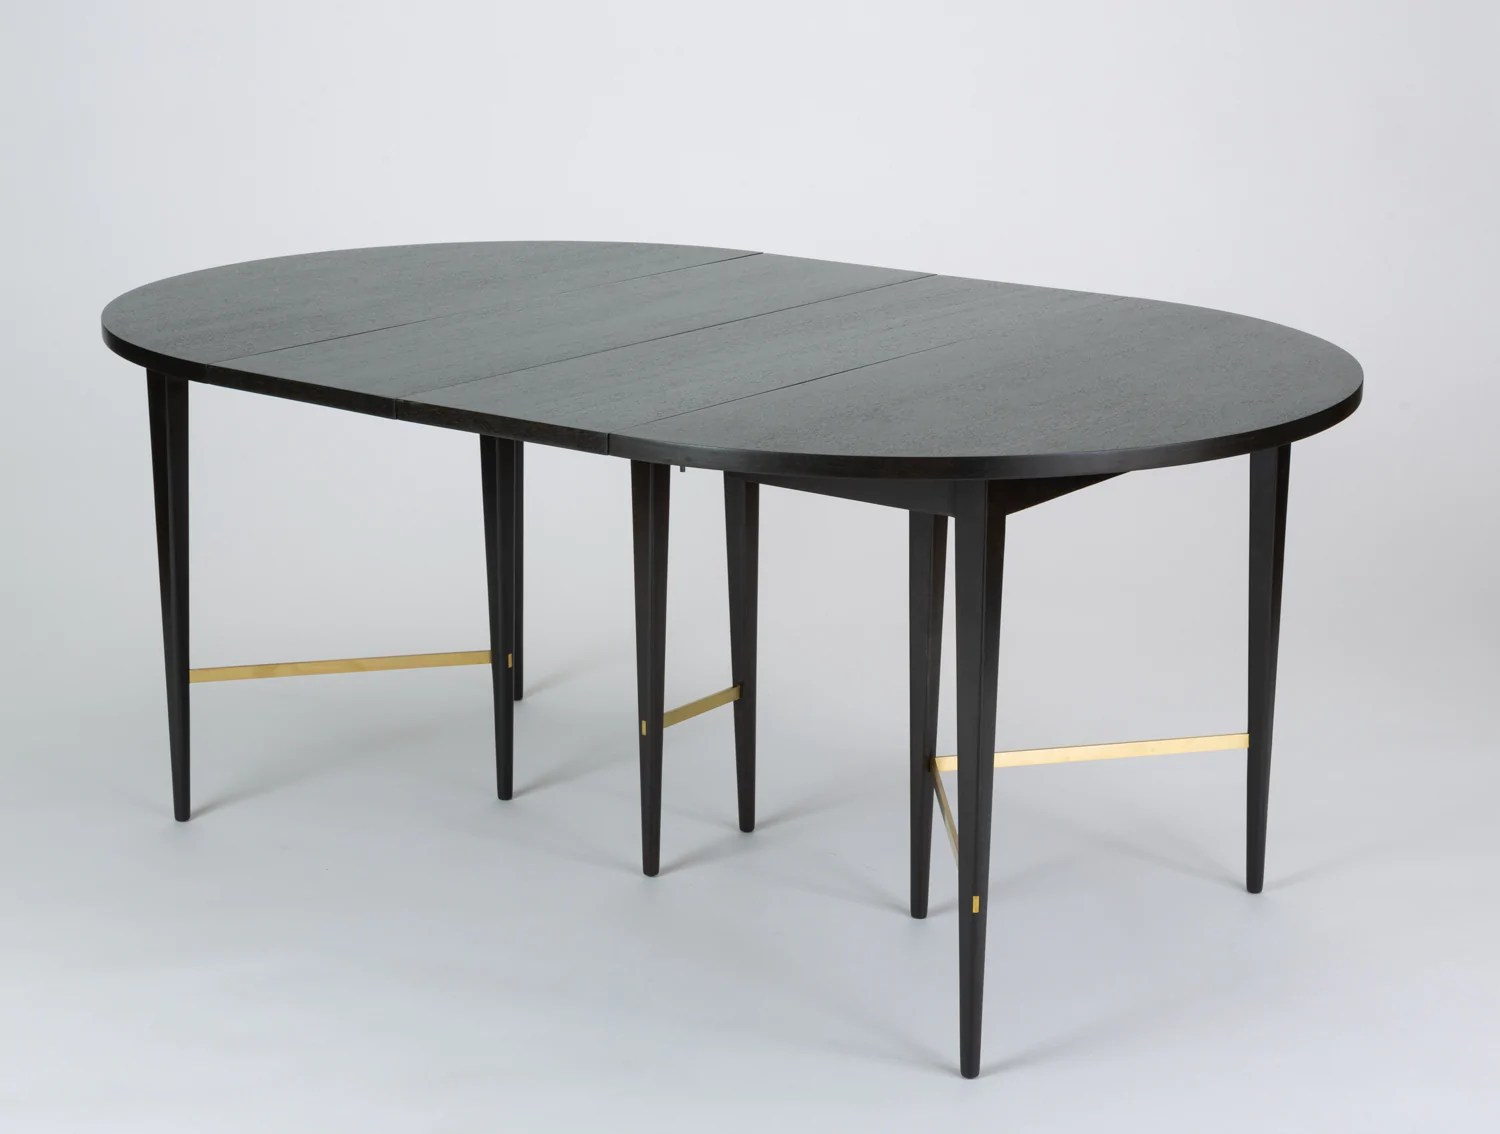 Paul Mccobb Chairs Ebonized Dining Table With Six Leaves By Paul Mccobb For Calvin Furniture